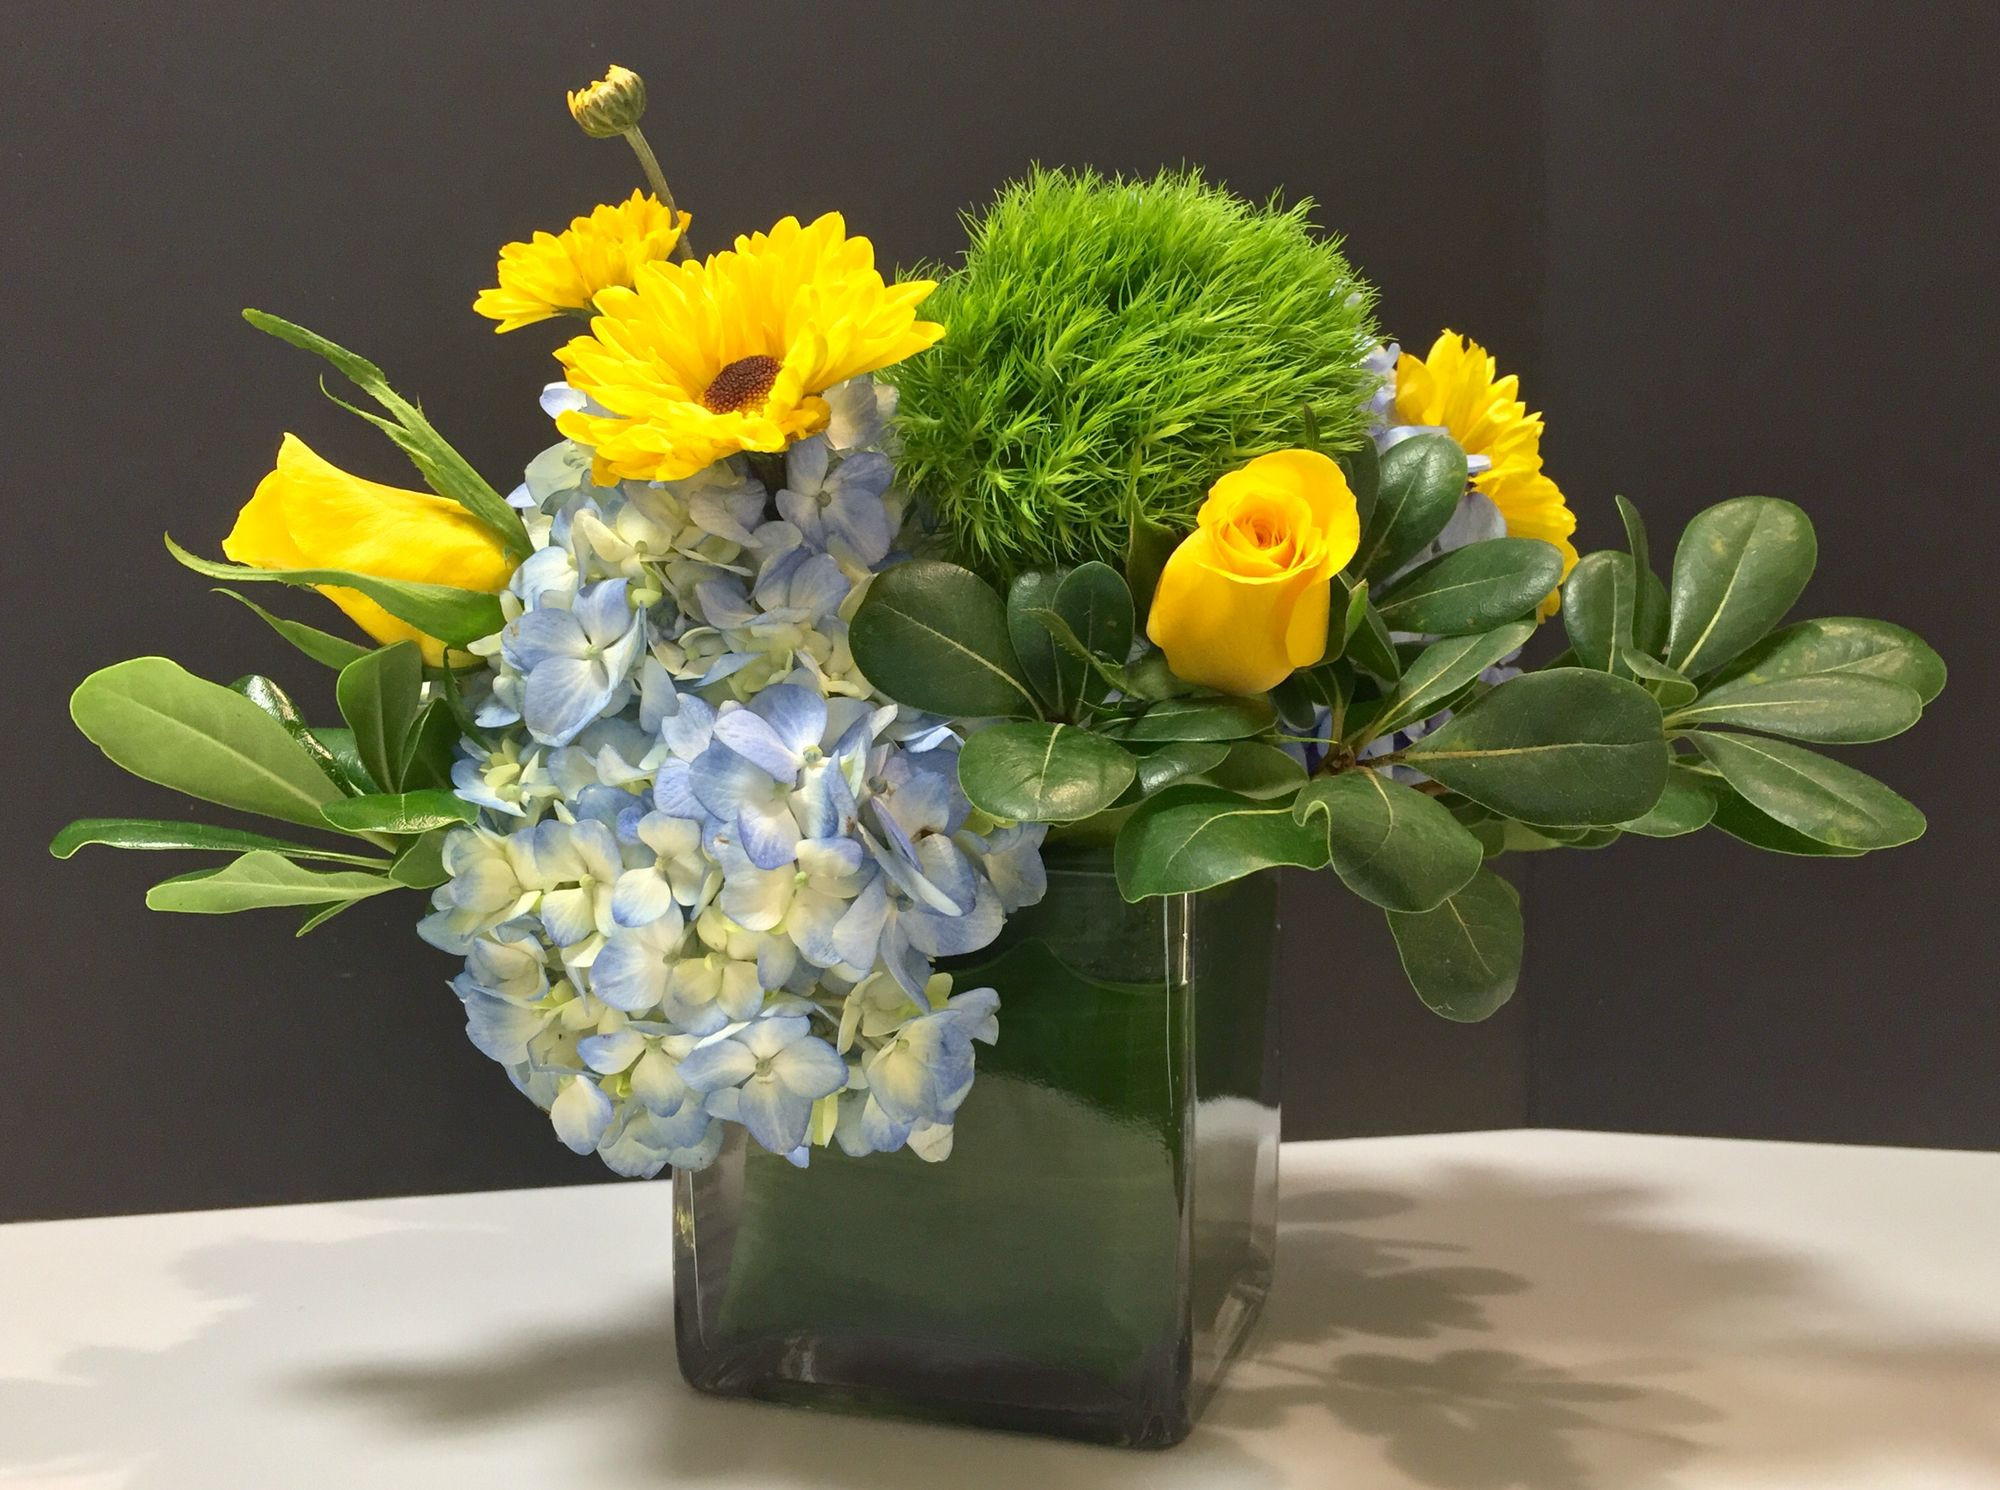 yellow rose vase of yellow roses light blue hydrangea green trick and pitasporum on in yellow roses light blue hydrangea green trick and pitasporum on cube vase wrapped in aspadistra leaf original design and arrangement by